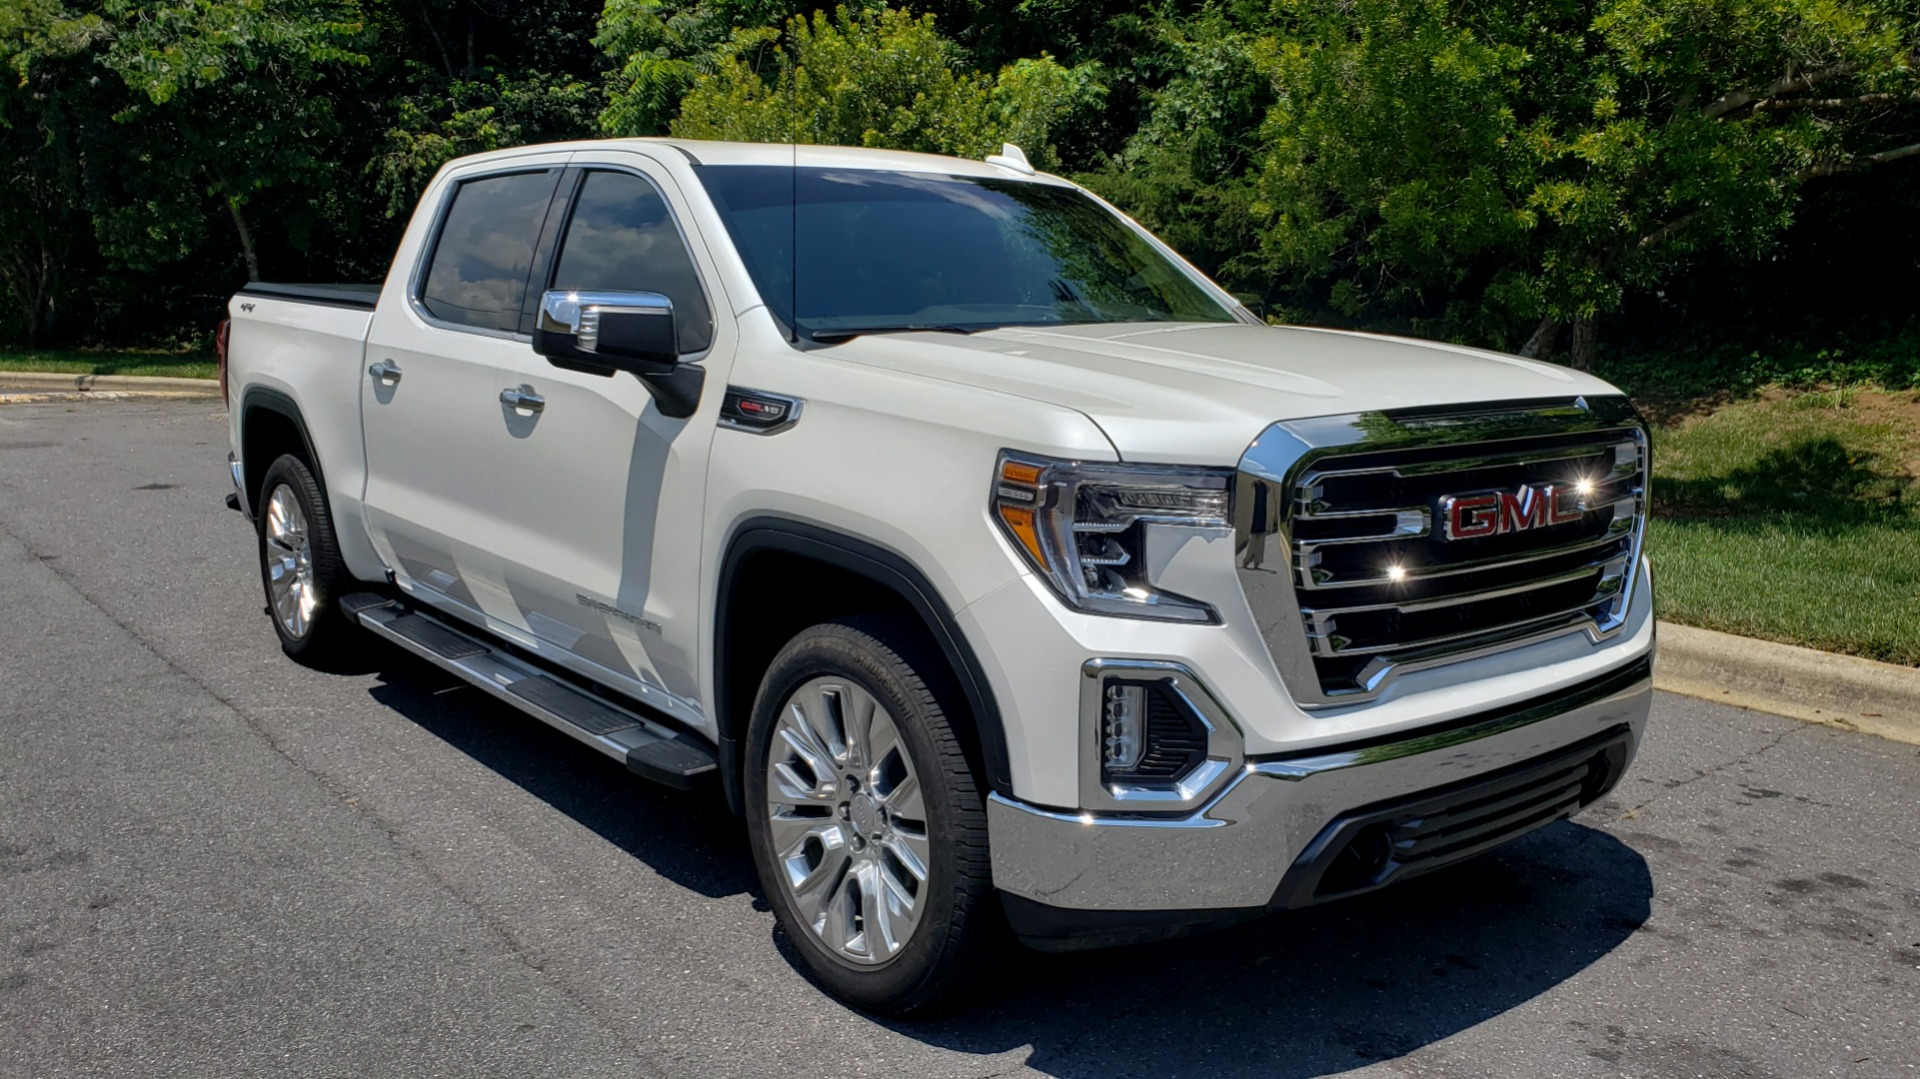 Used 2019 GMC SIERRA 1500 SLT 4WD CREWCAB / PREMIUM / 6.2L V8 / NAV / SUNROOF / VENT SEATS for sale Sold at Formula Imports in Charlotte NC 28227 4